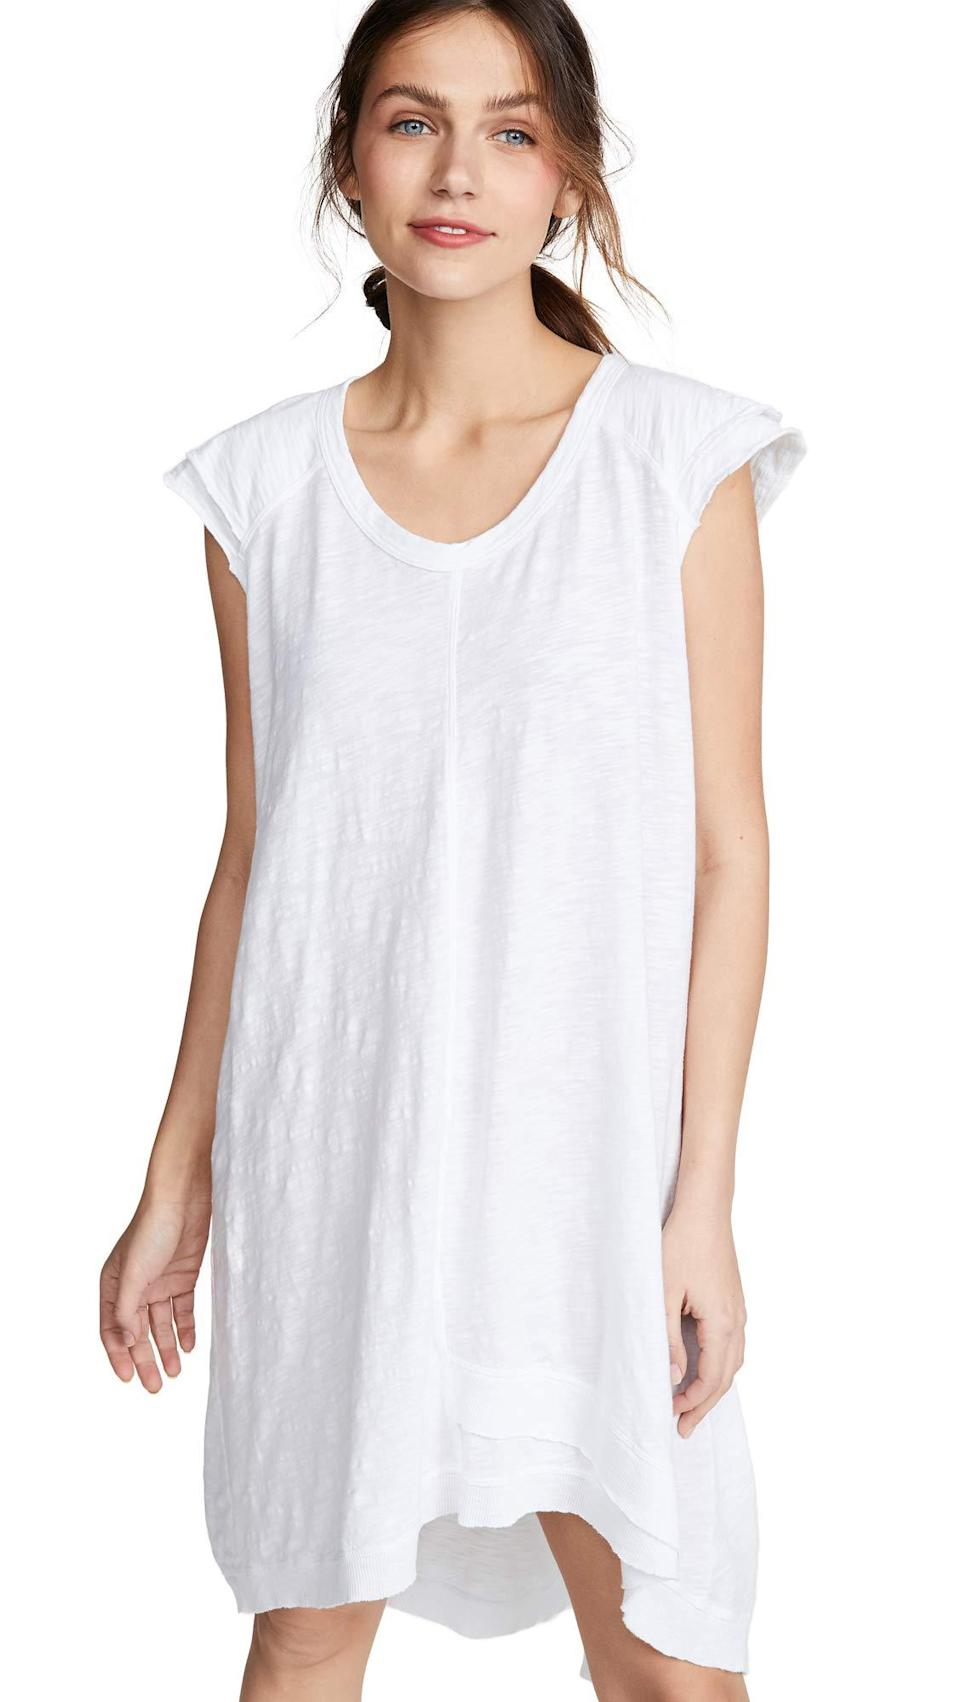 """<br> <br> <strong>Wilt</strong> Women's T-Shirt Dress, $, available at <a href=""""https://amzn.to/368MmlZ"""" rel=""""nofollow noopener"""" target=""""_blank"""" data-ylk=""""slk:Amazon"""" class=""""link rapid-noclick-resp"""">Amazon</a>"""